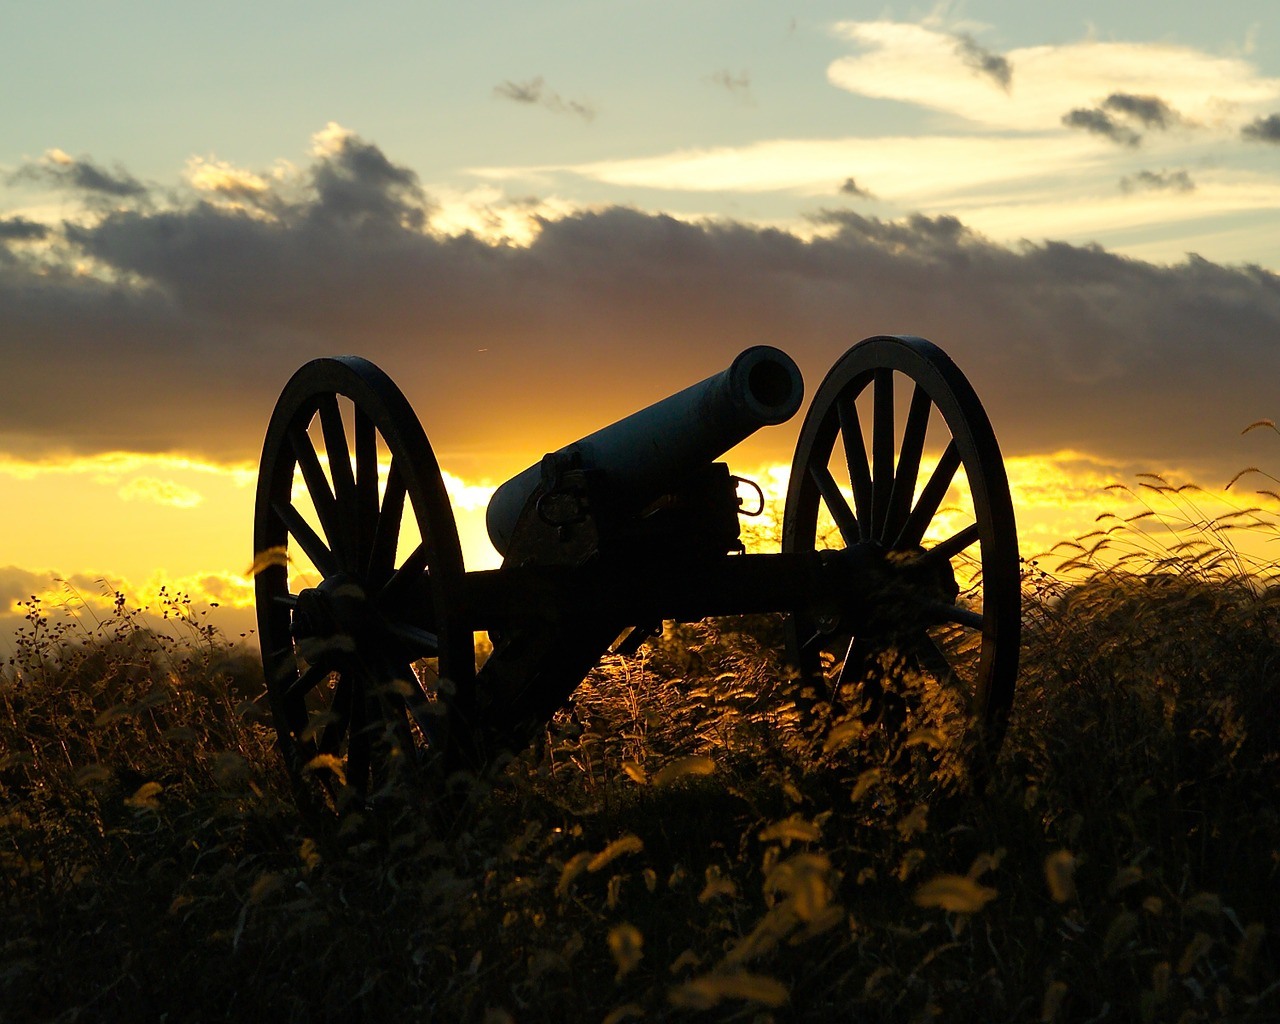 antietam,maryland,sunset,sky,clouds,cannon,american civil war,battlefield,silhouette,silhouettes,nature,outside,dusk,beautiful,free pictures, free photos, free images, royalty free, free illustrations, public domain